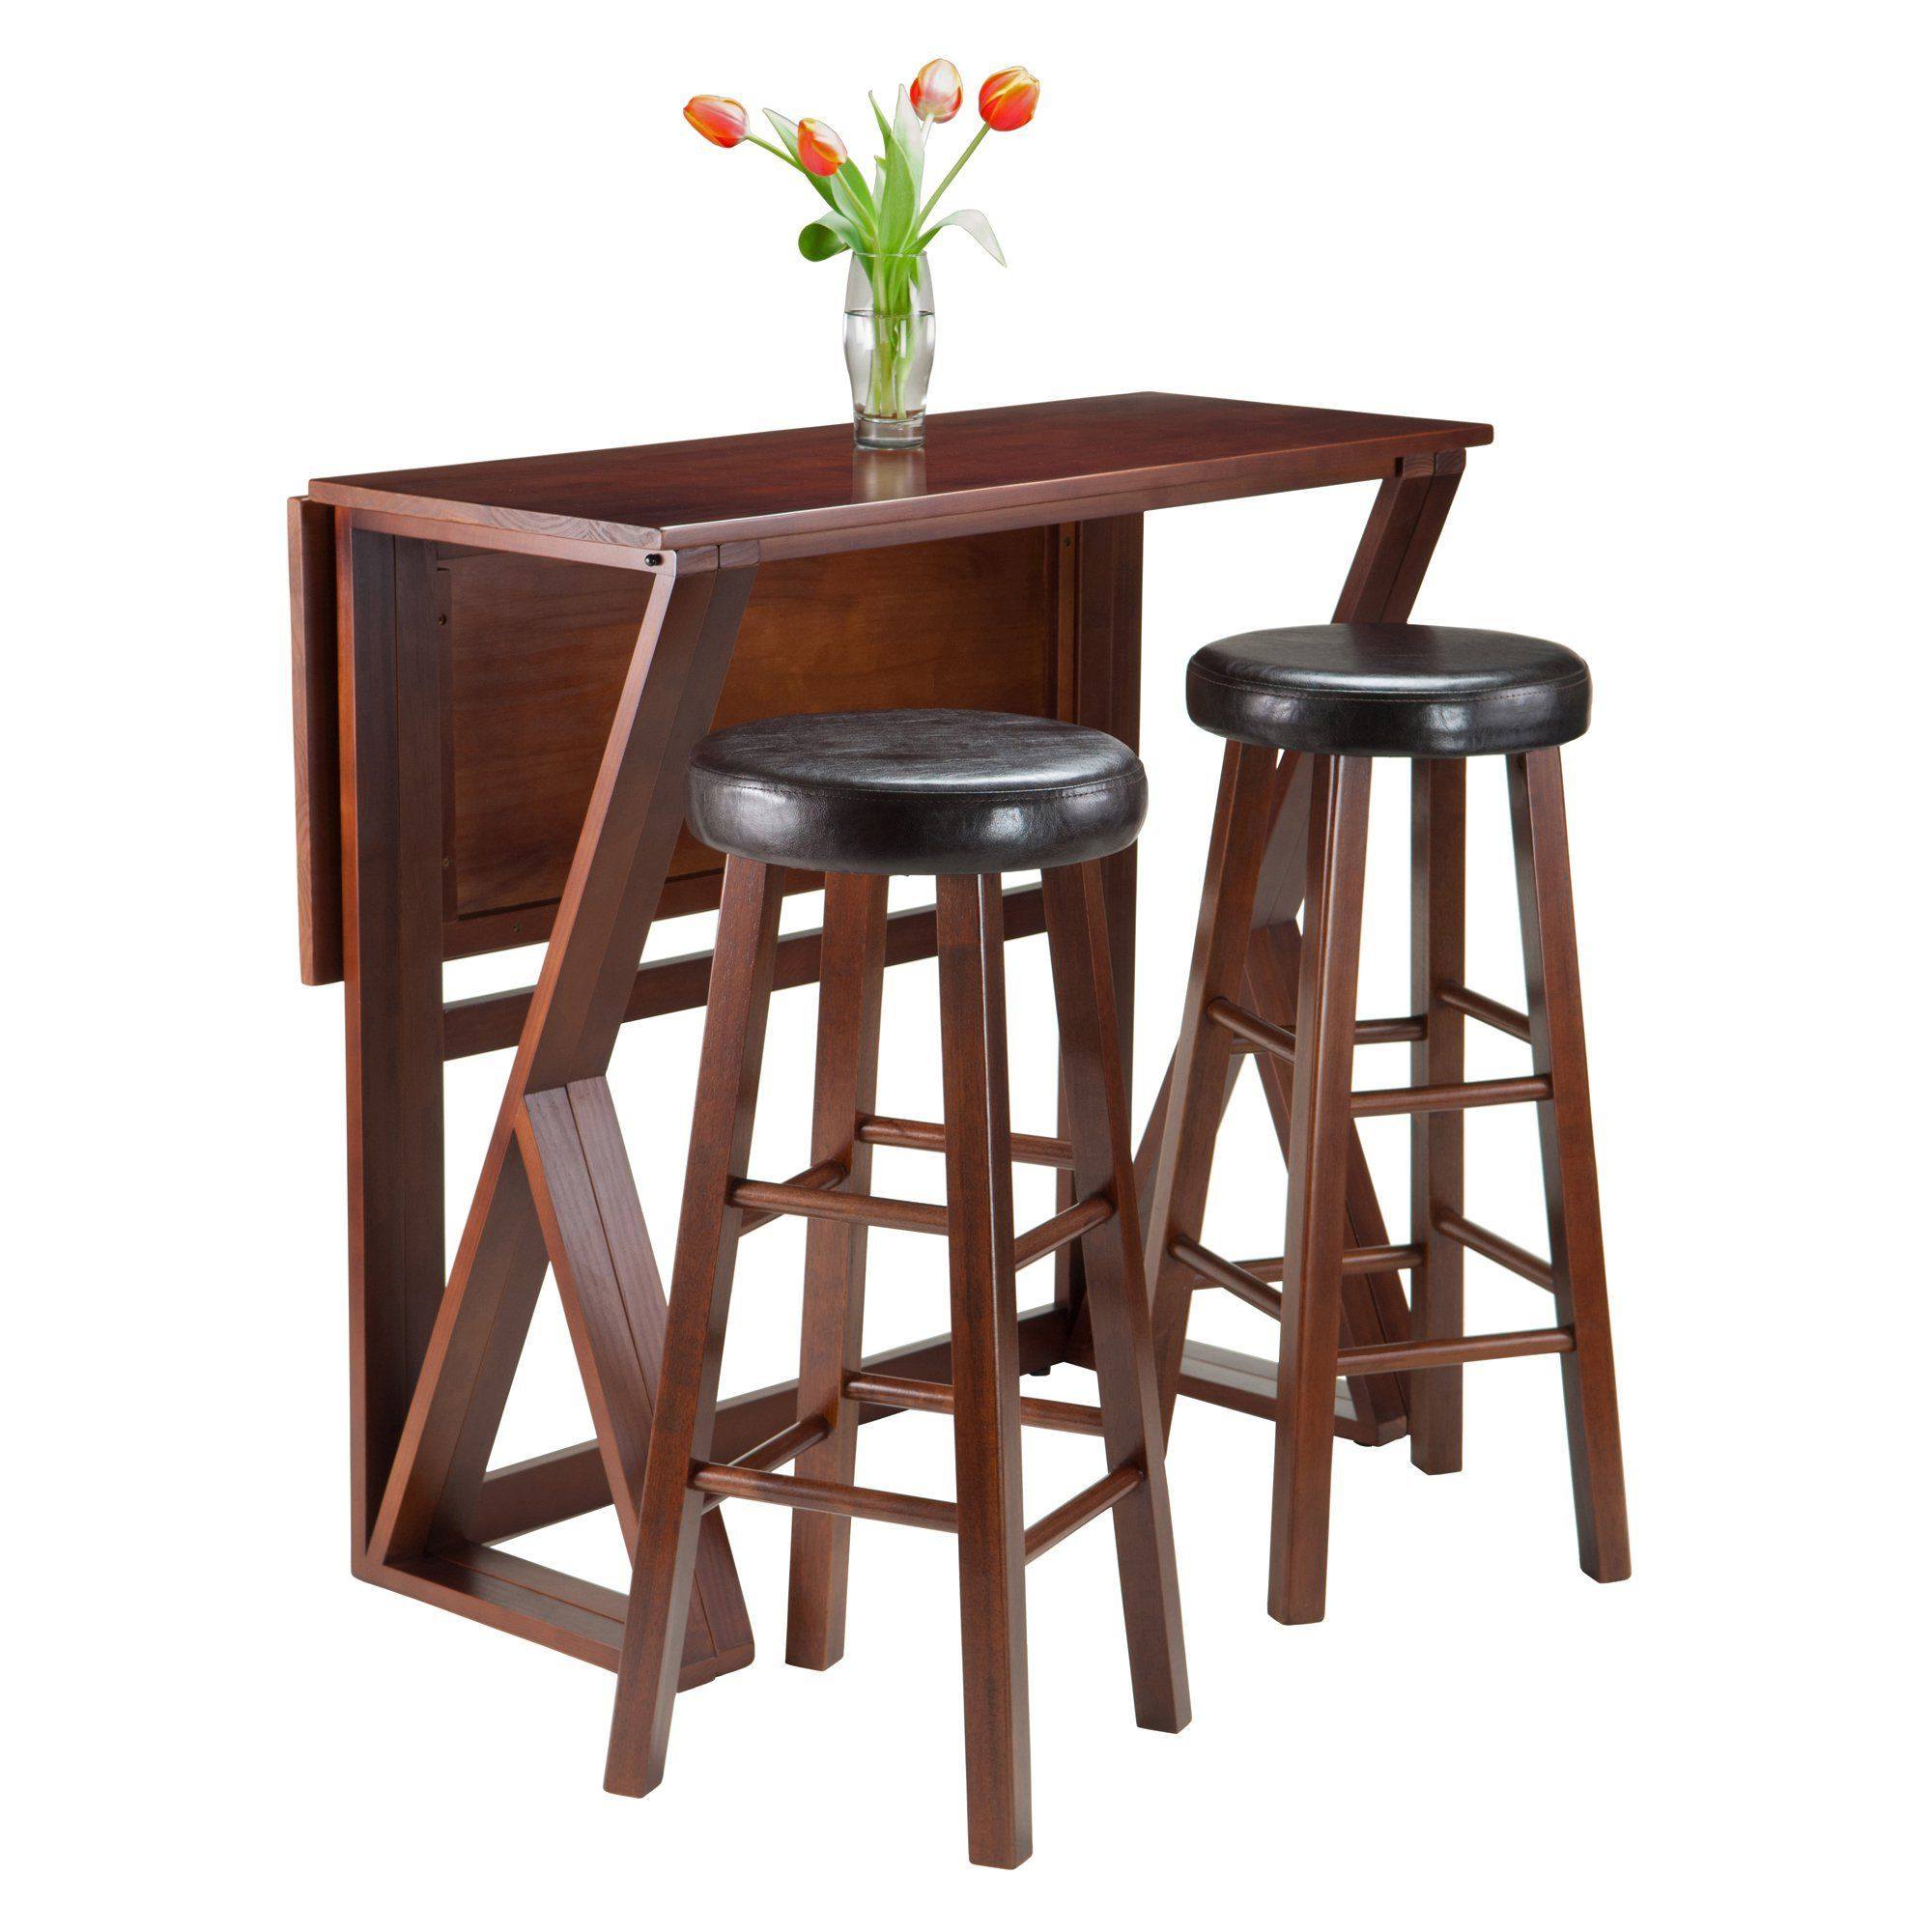 Harrington 3 Pc Drop Leaf High Table With Two Marta Cushion With Regard To Popular Crownover 3 Piece Bar Table Sets (View 15 of 25)